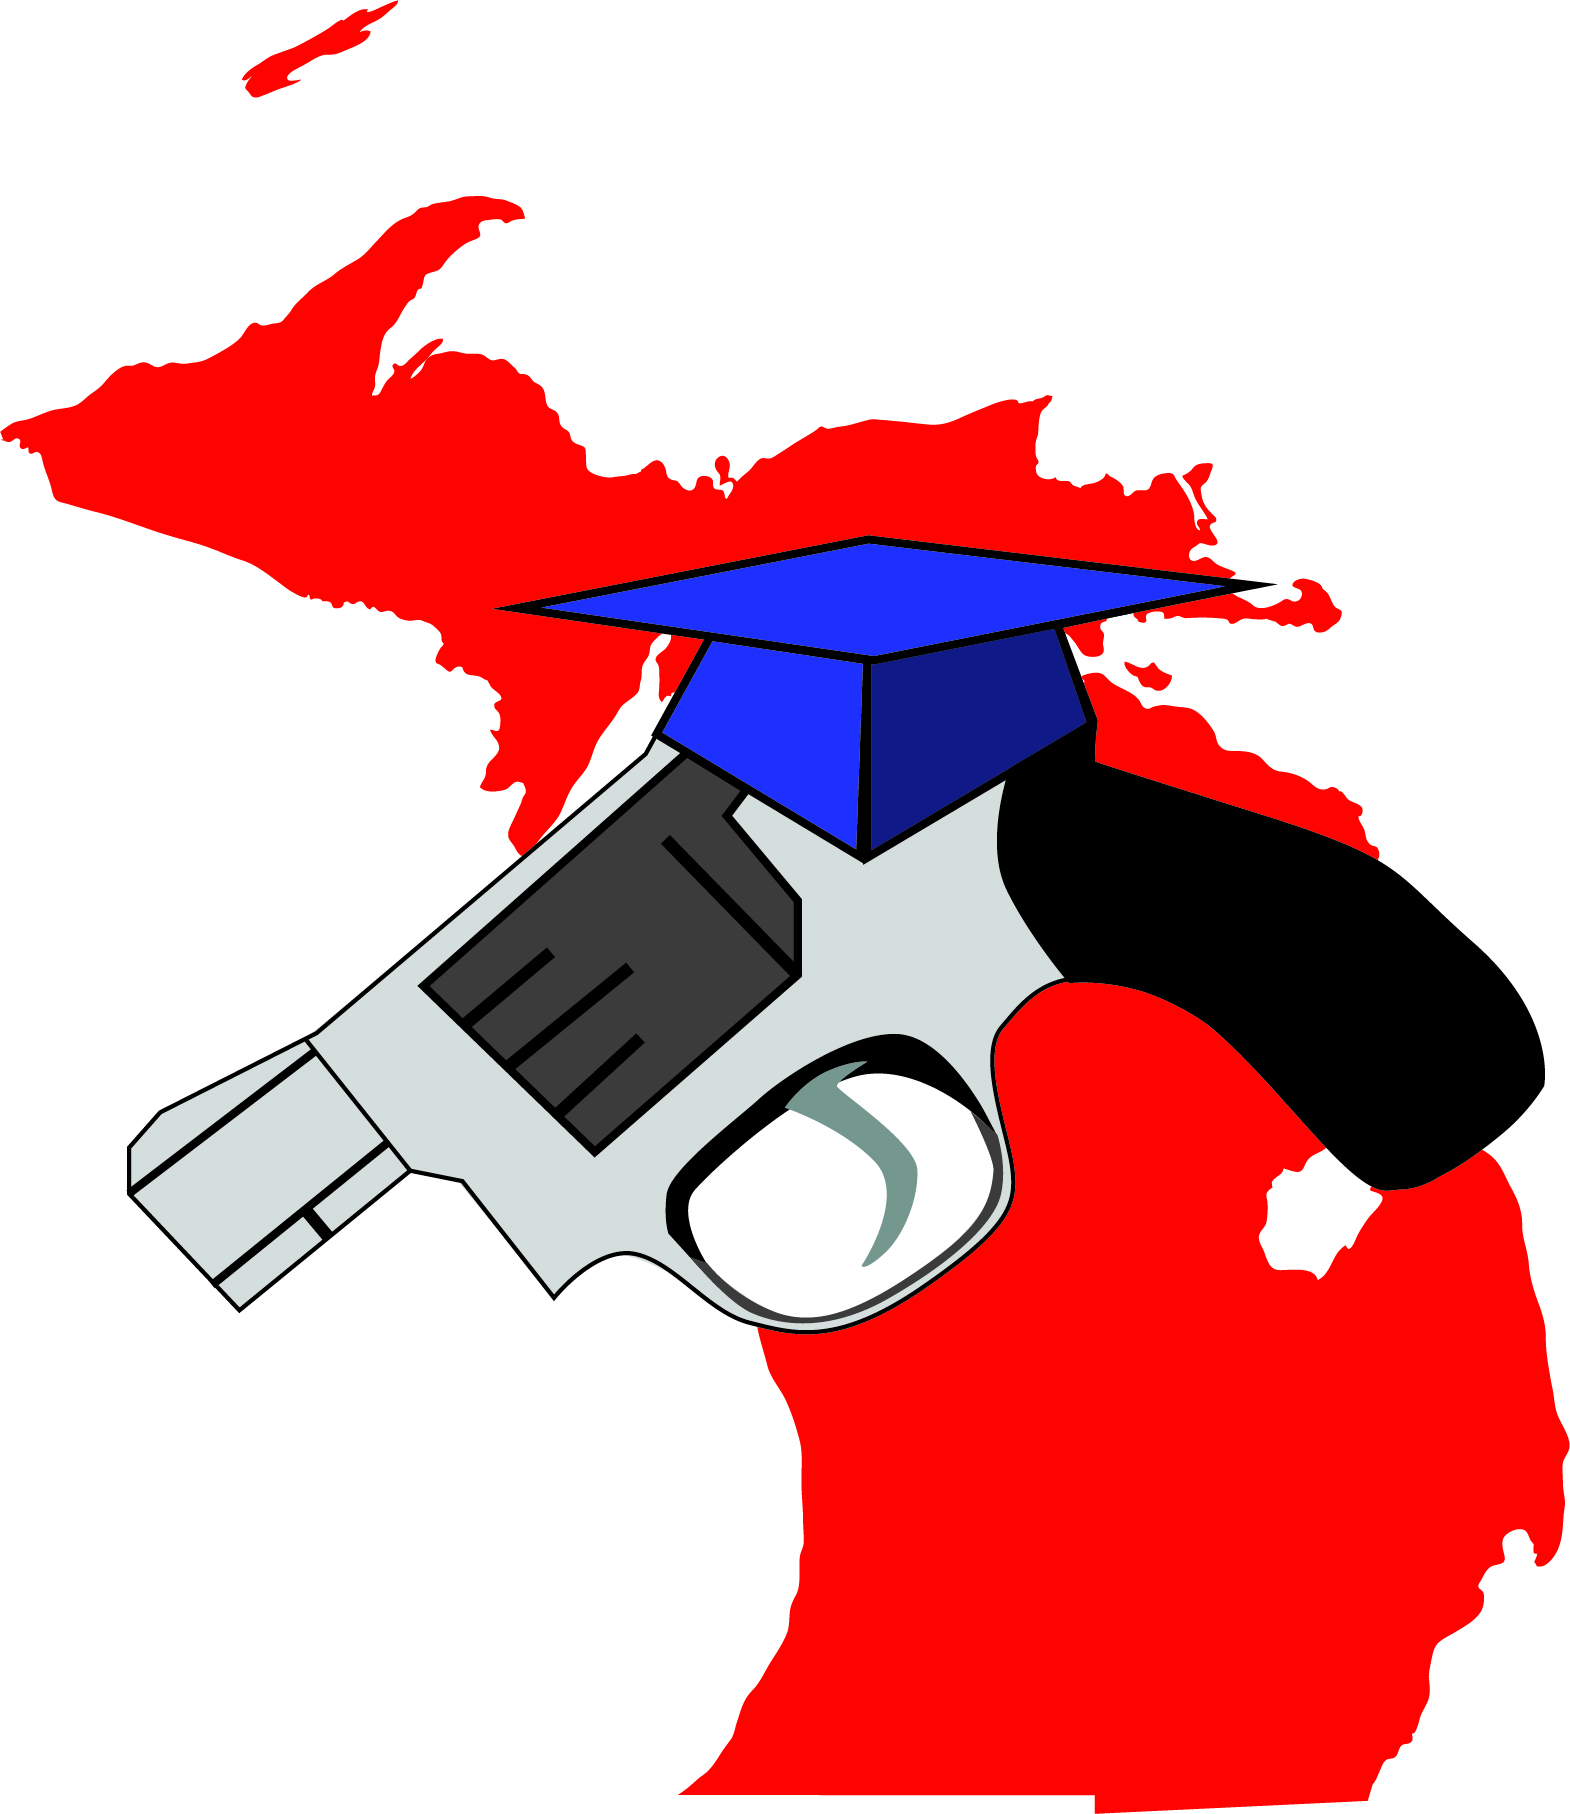 Michigan map in red with large handgun wearing a graduation cap.